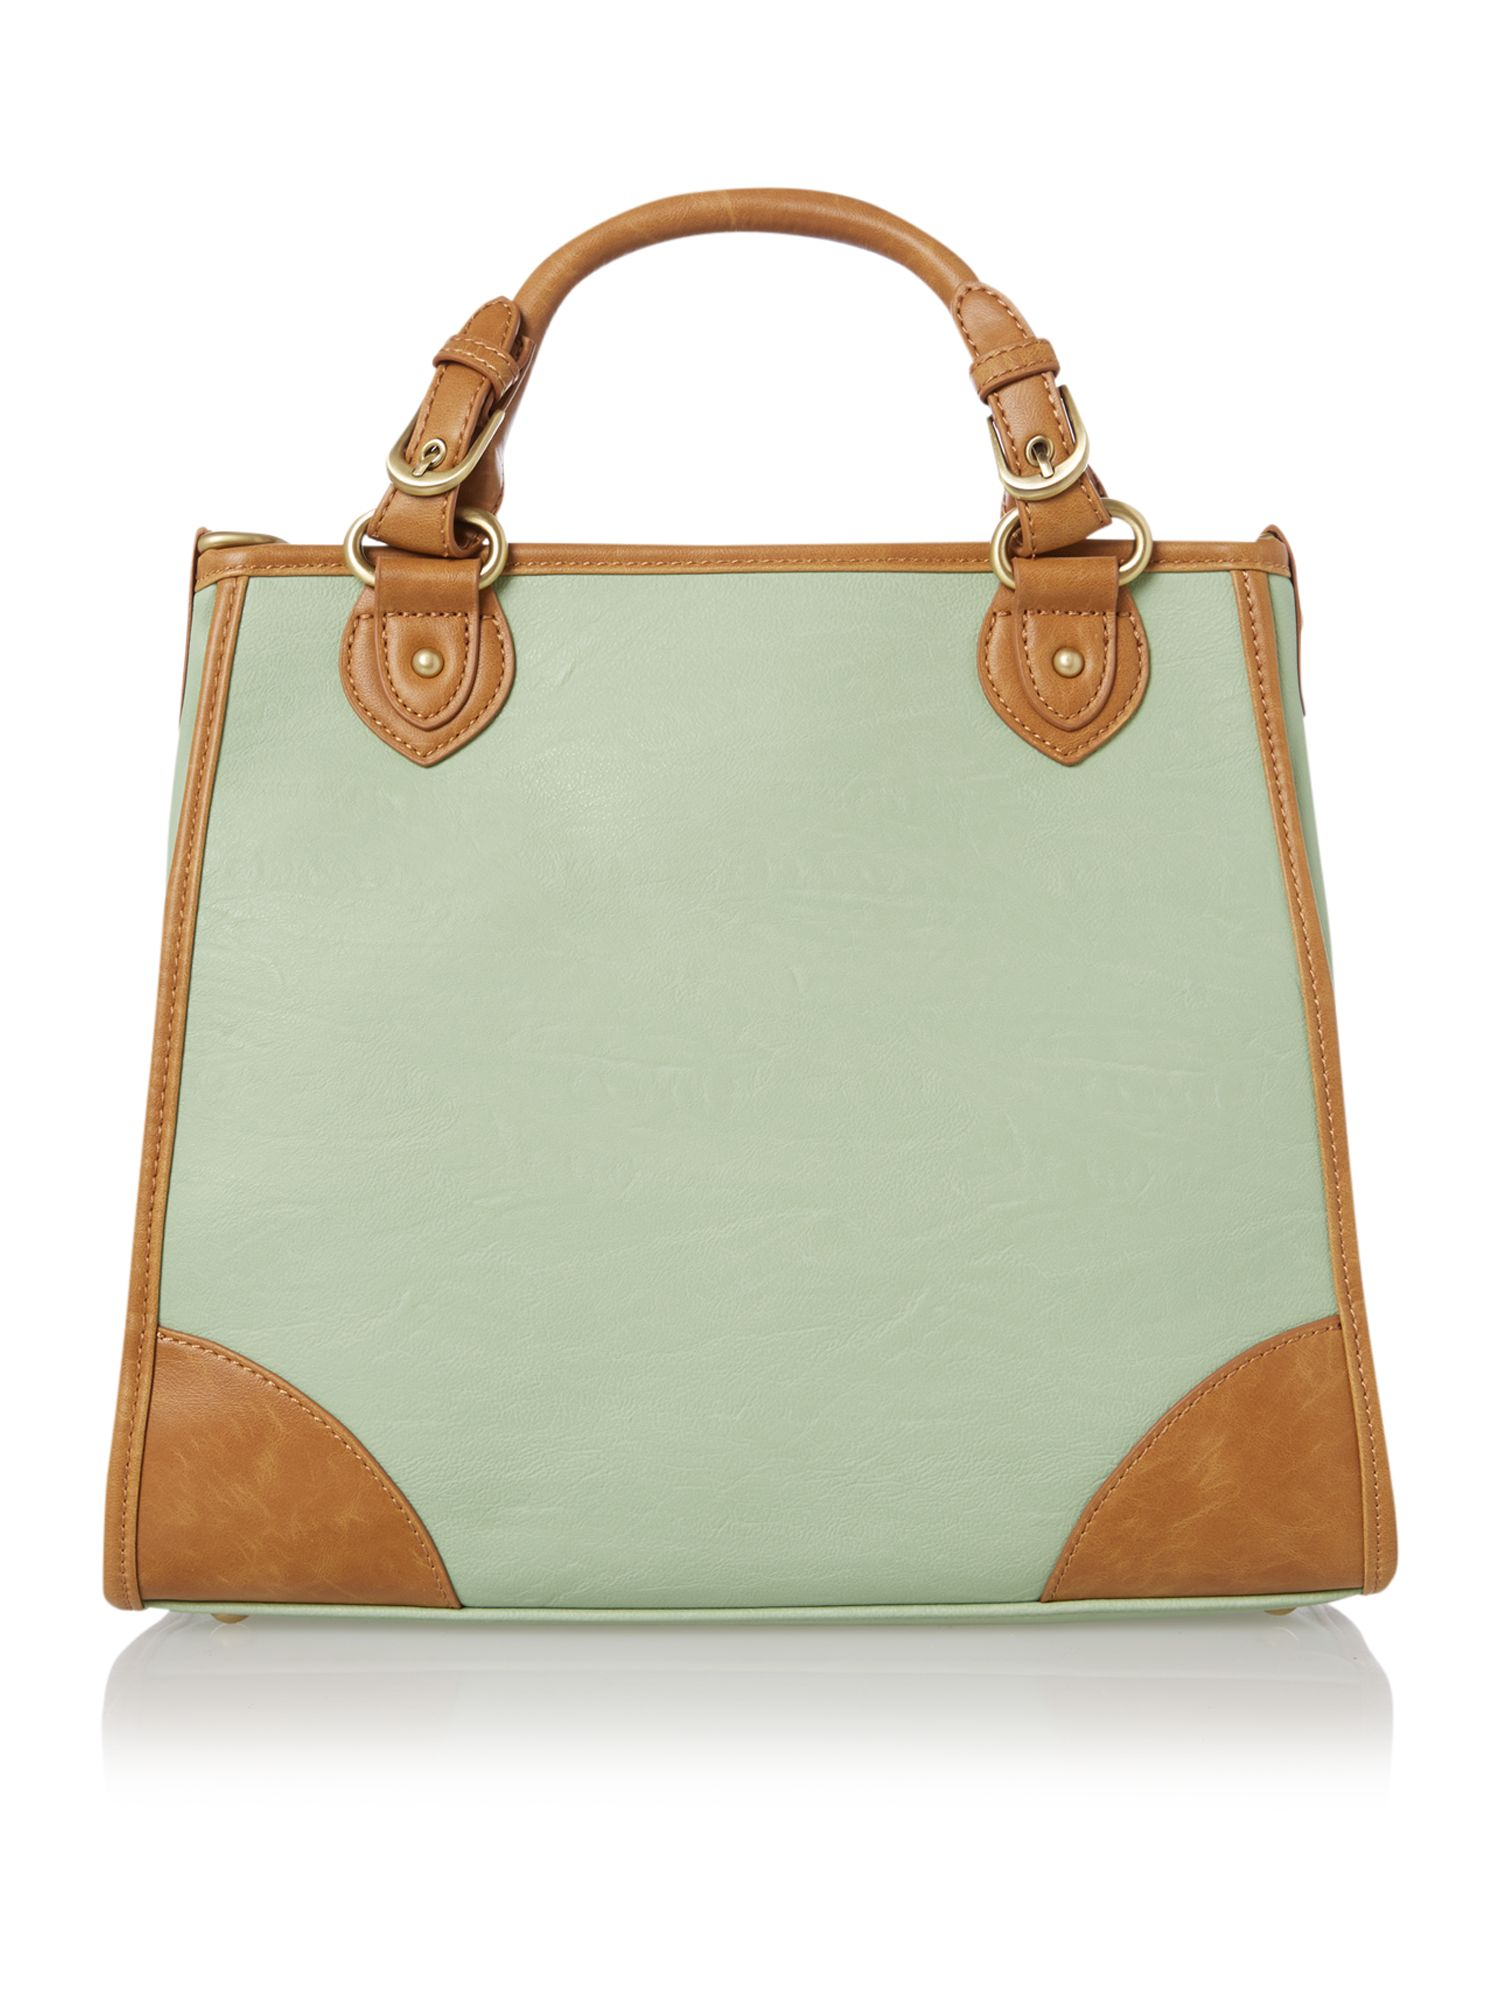 Dillan green tote bag